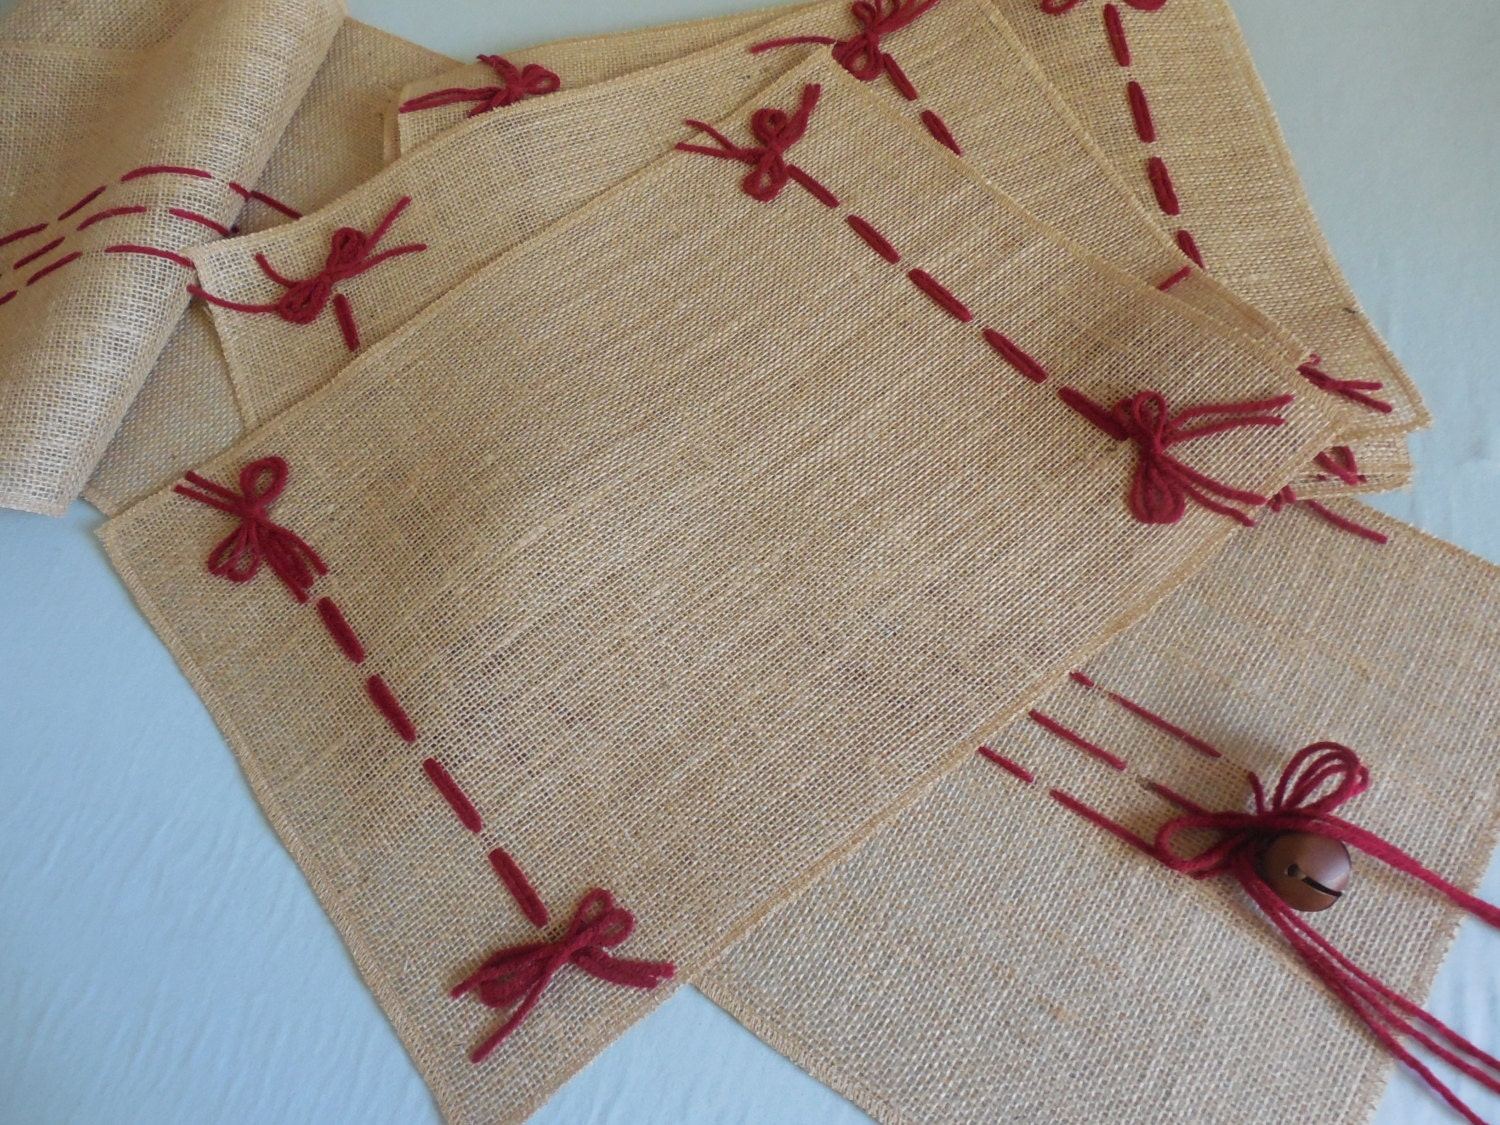 Burlap Place Mats Rustic Christmas Table Decor With Barn Red